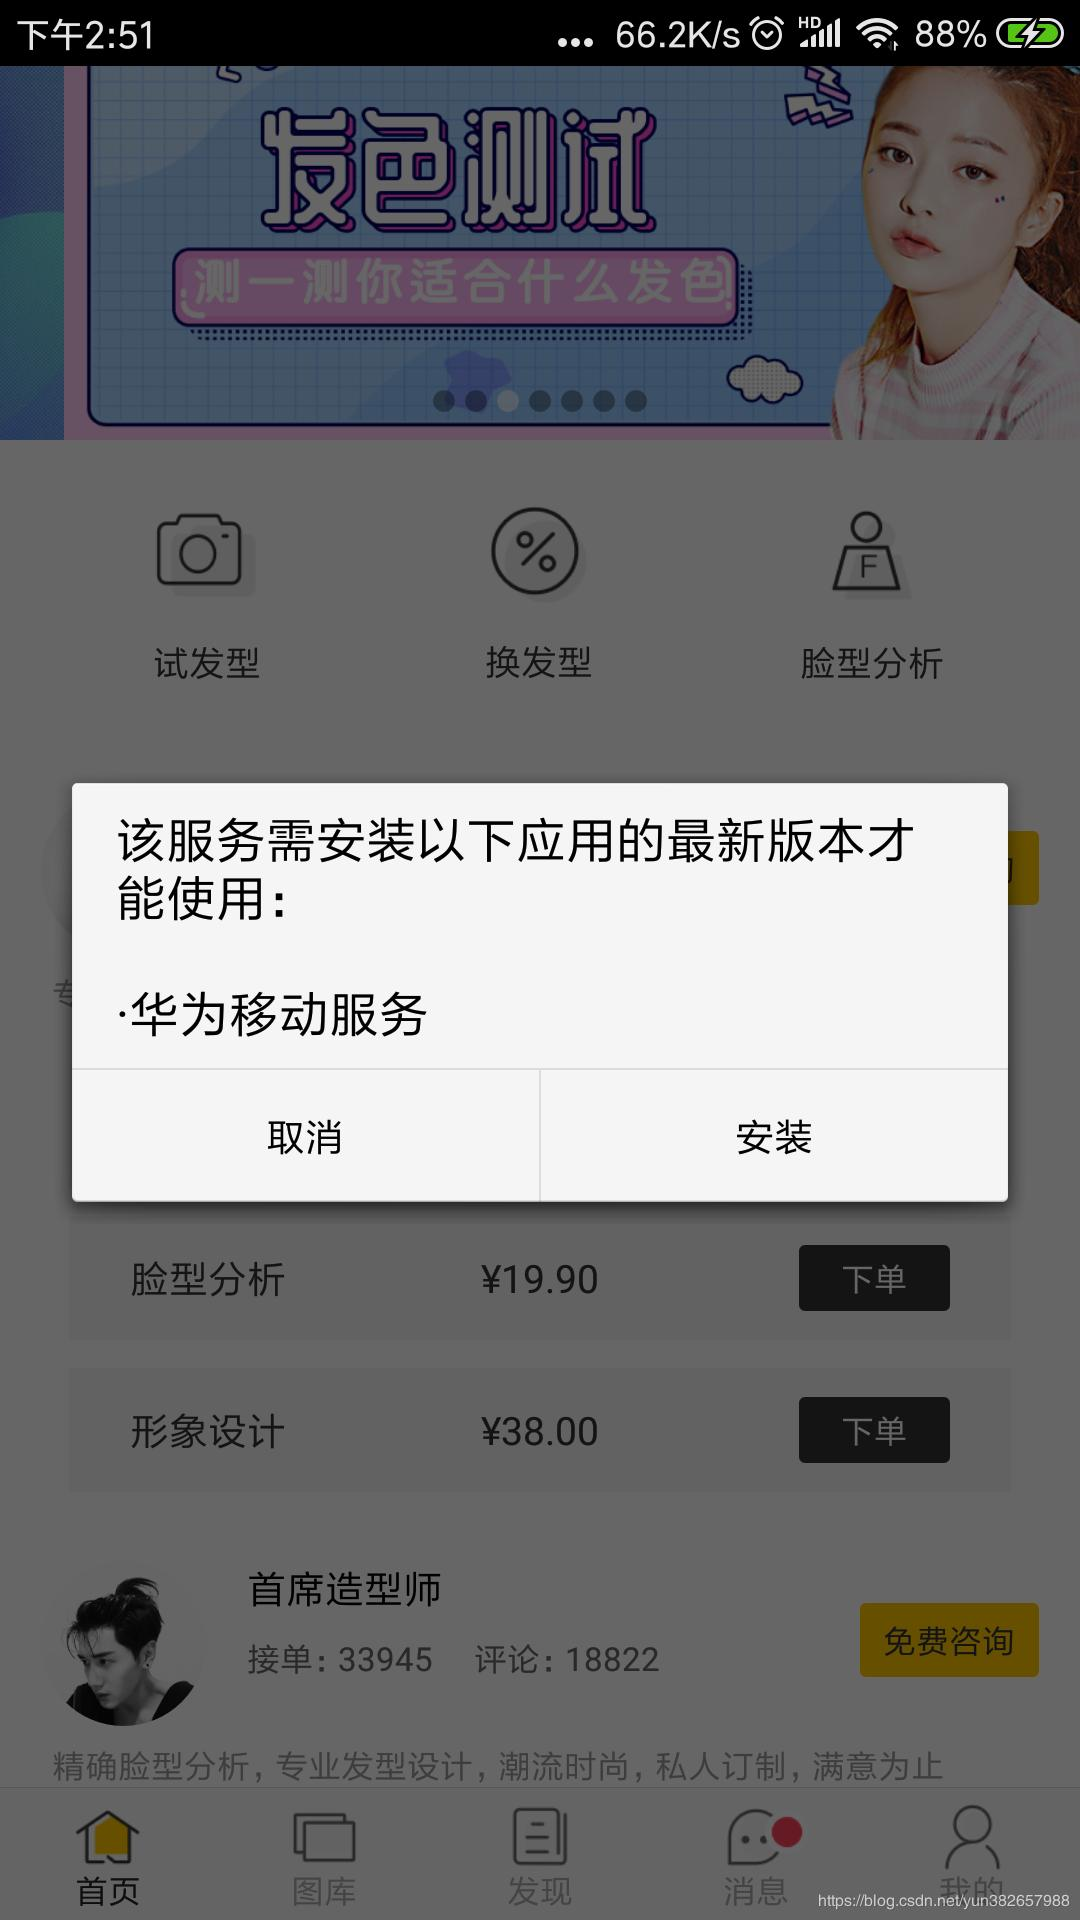 Integrated Huawei account login and payment in Android project